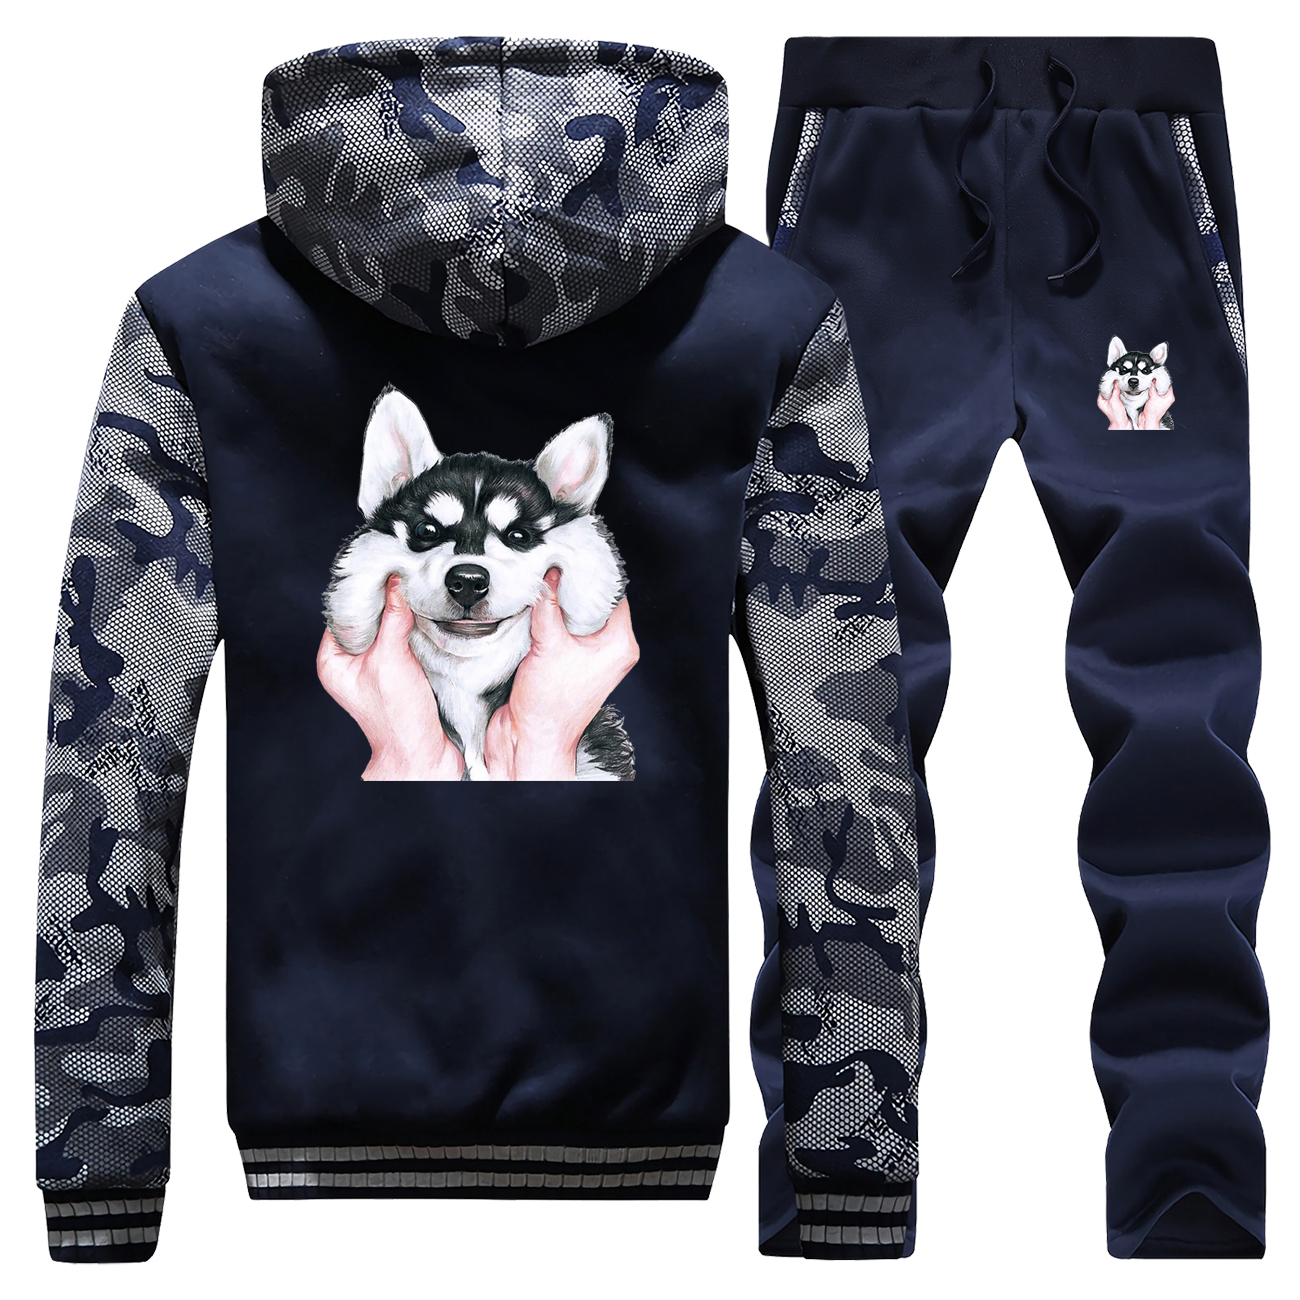 Winter 2019 New Fashion Warm Jackets Cute Smile Husky Cartoon Hoodie Sportswear Camouflage Suit Coat Thick+Pants 2 Piece Set